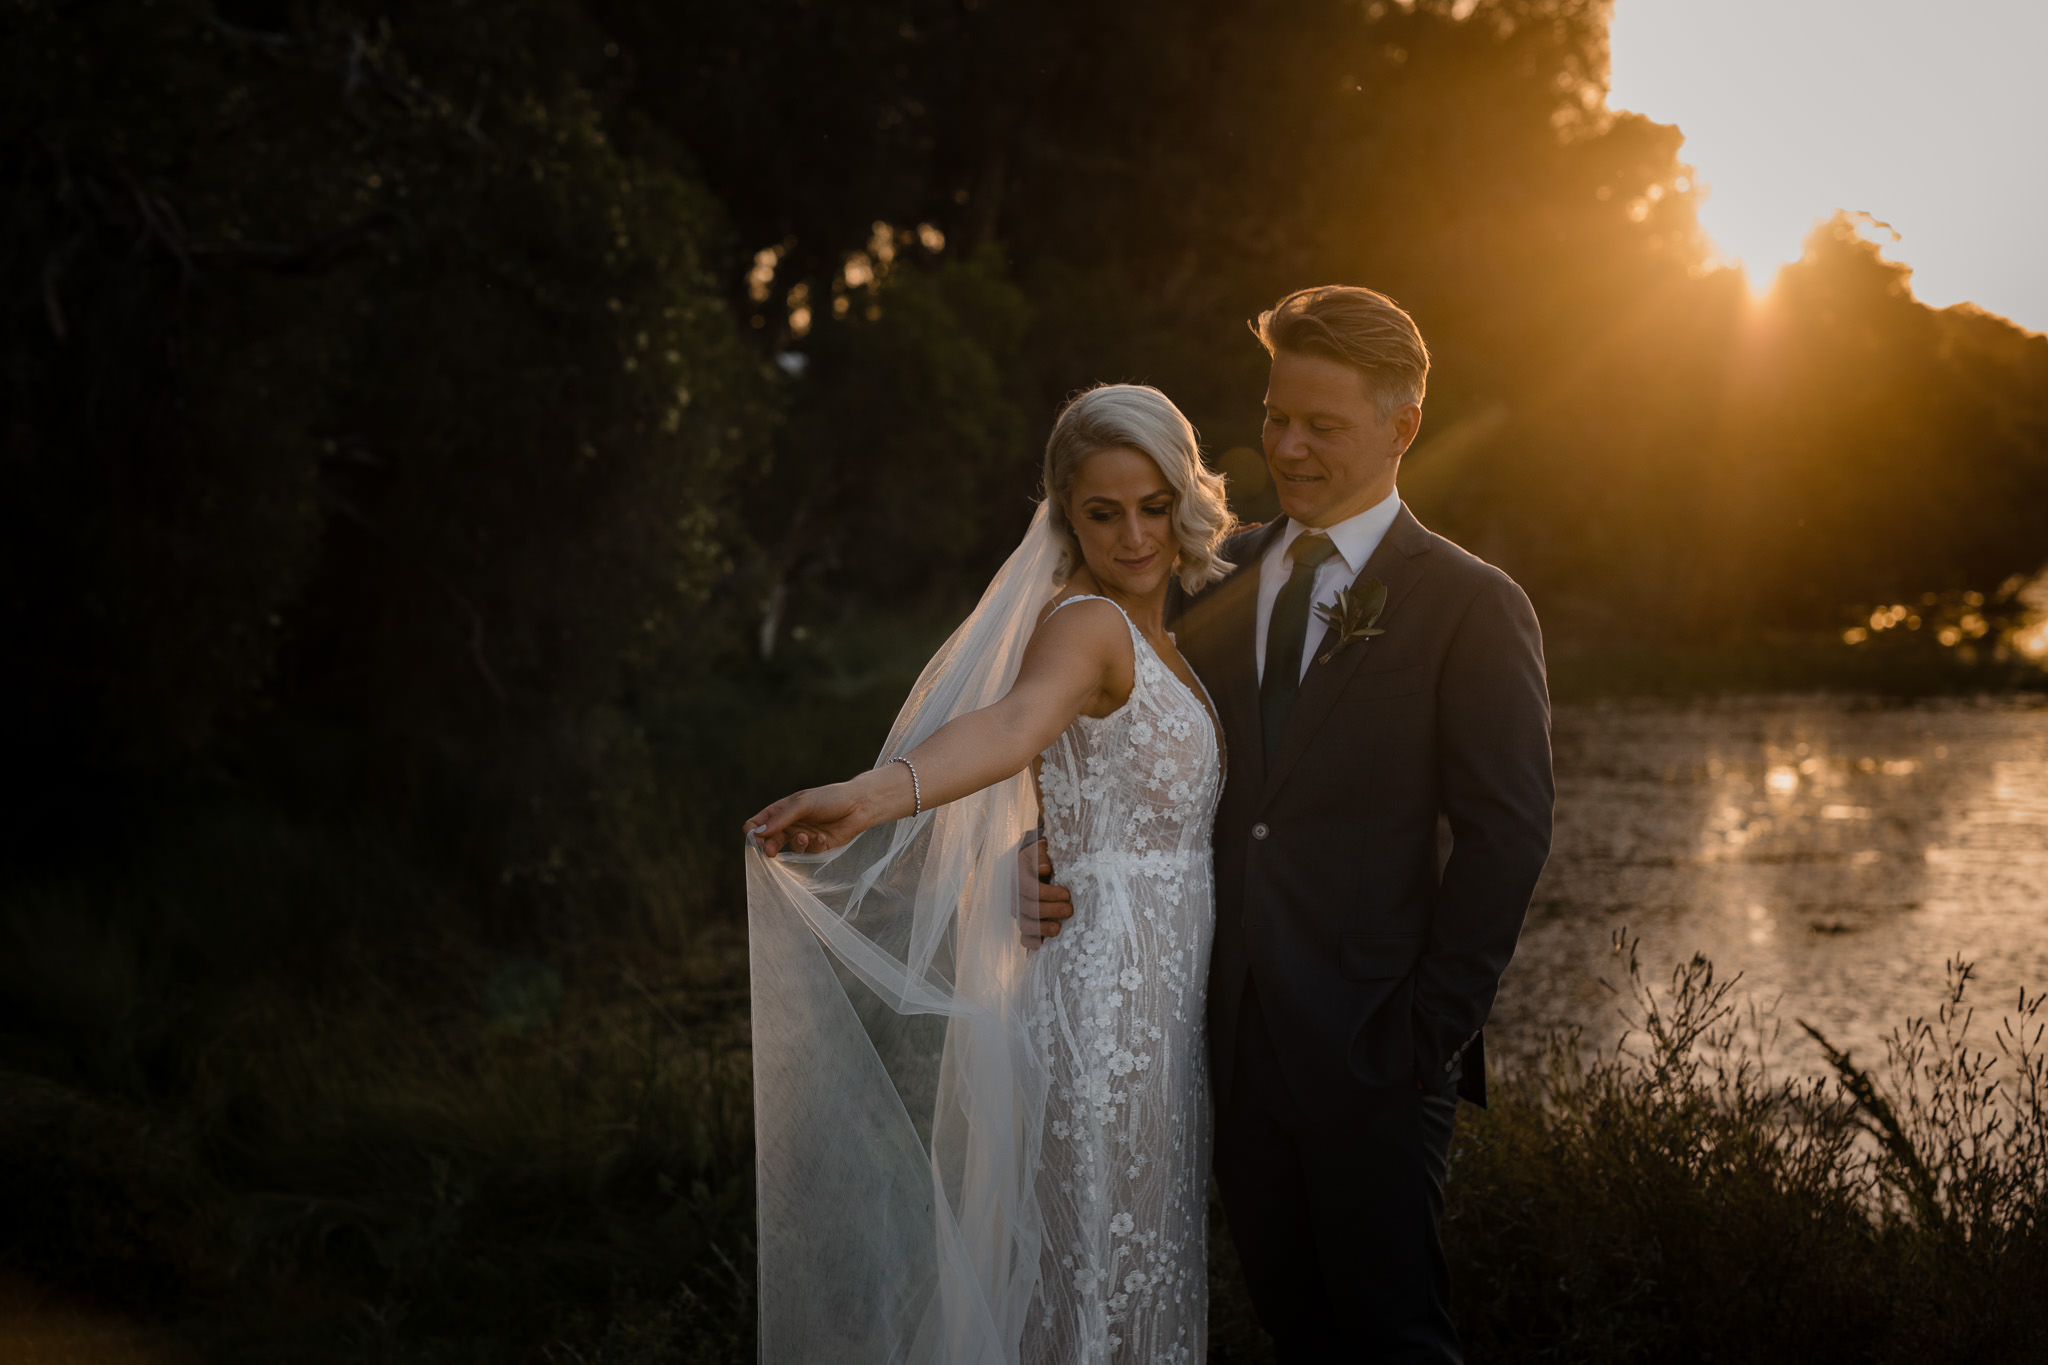 bride playing with veil while groom cuddles her at sunset at Old Broadwater Farm in Busselton